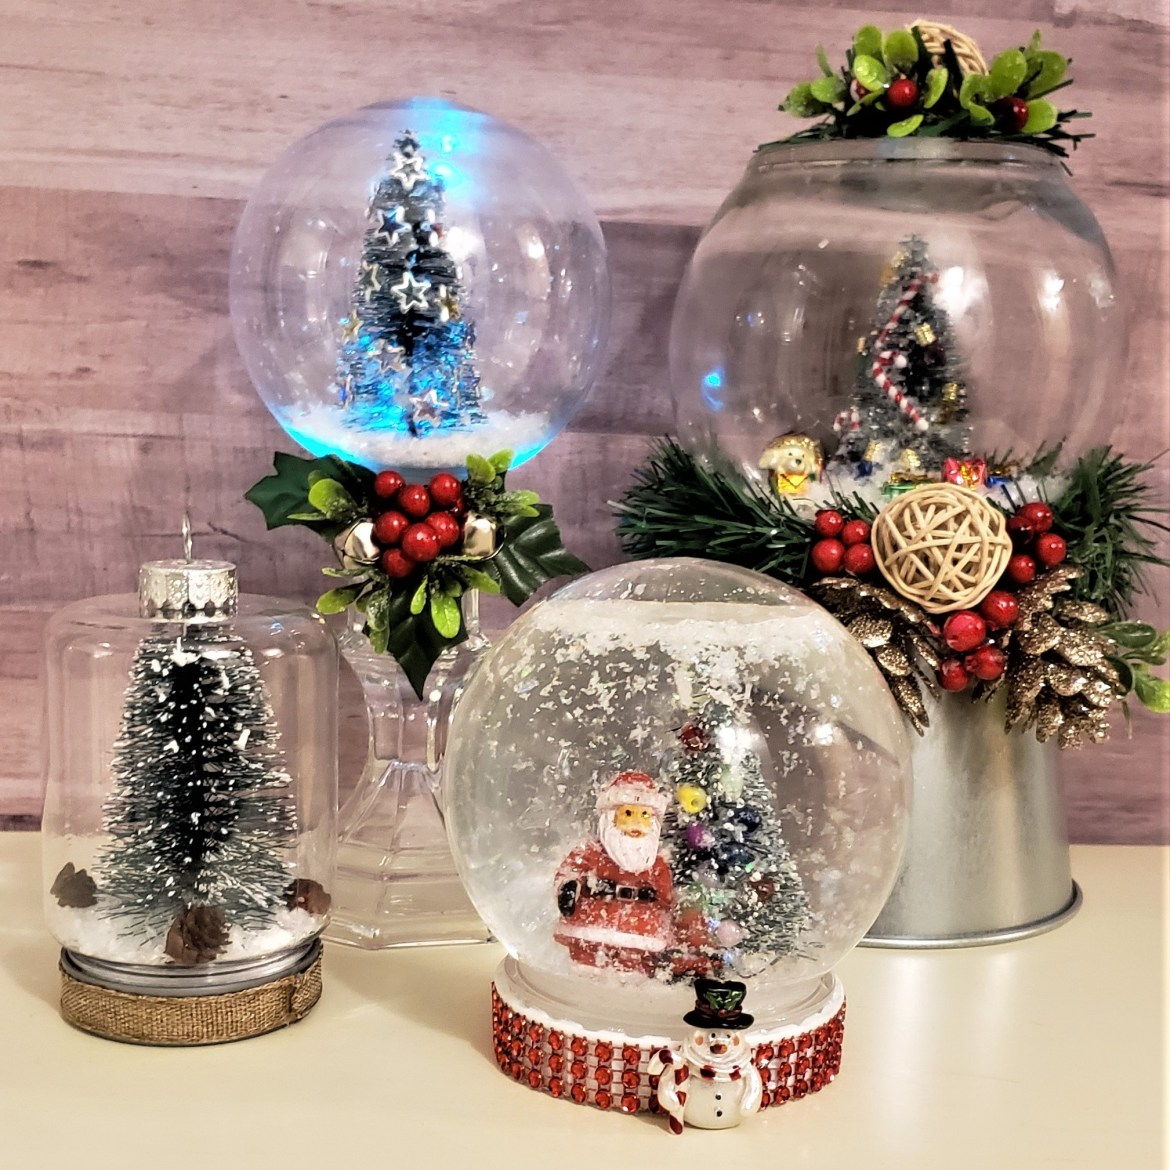 Four Types of Christmas Snow Globes